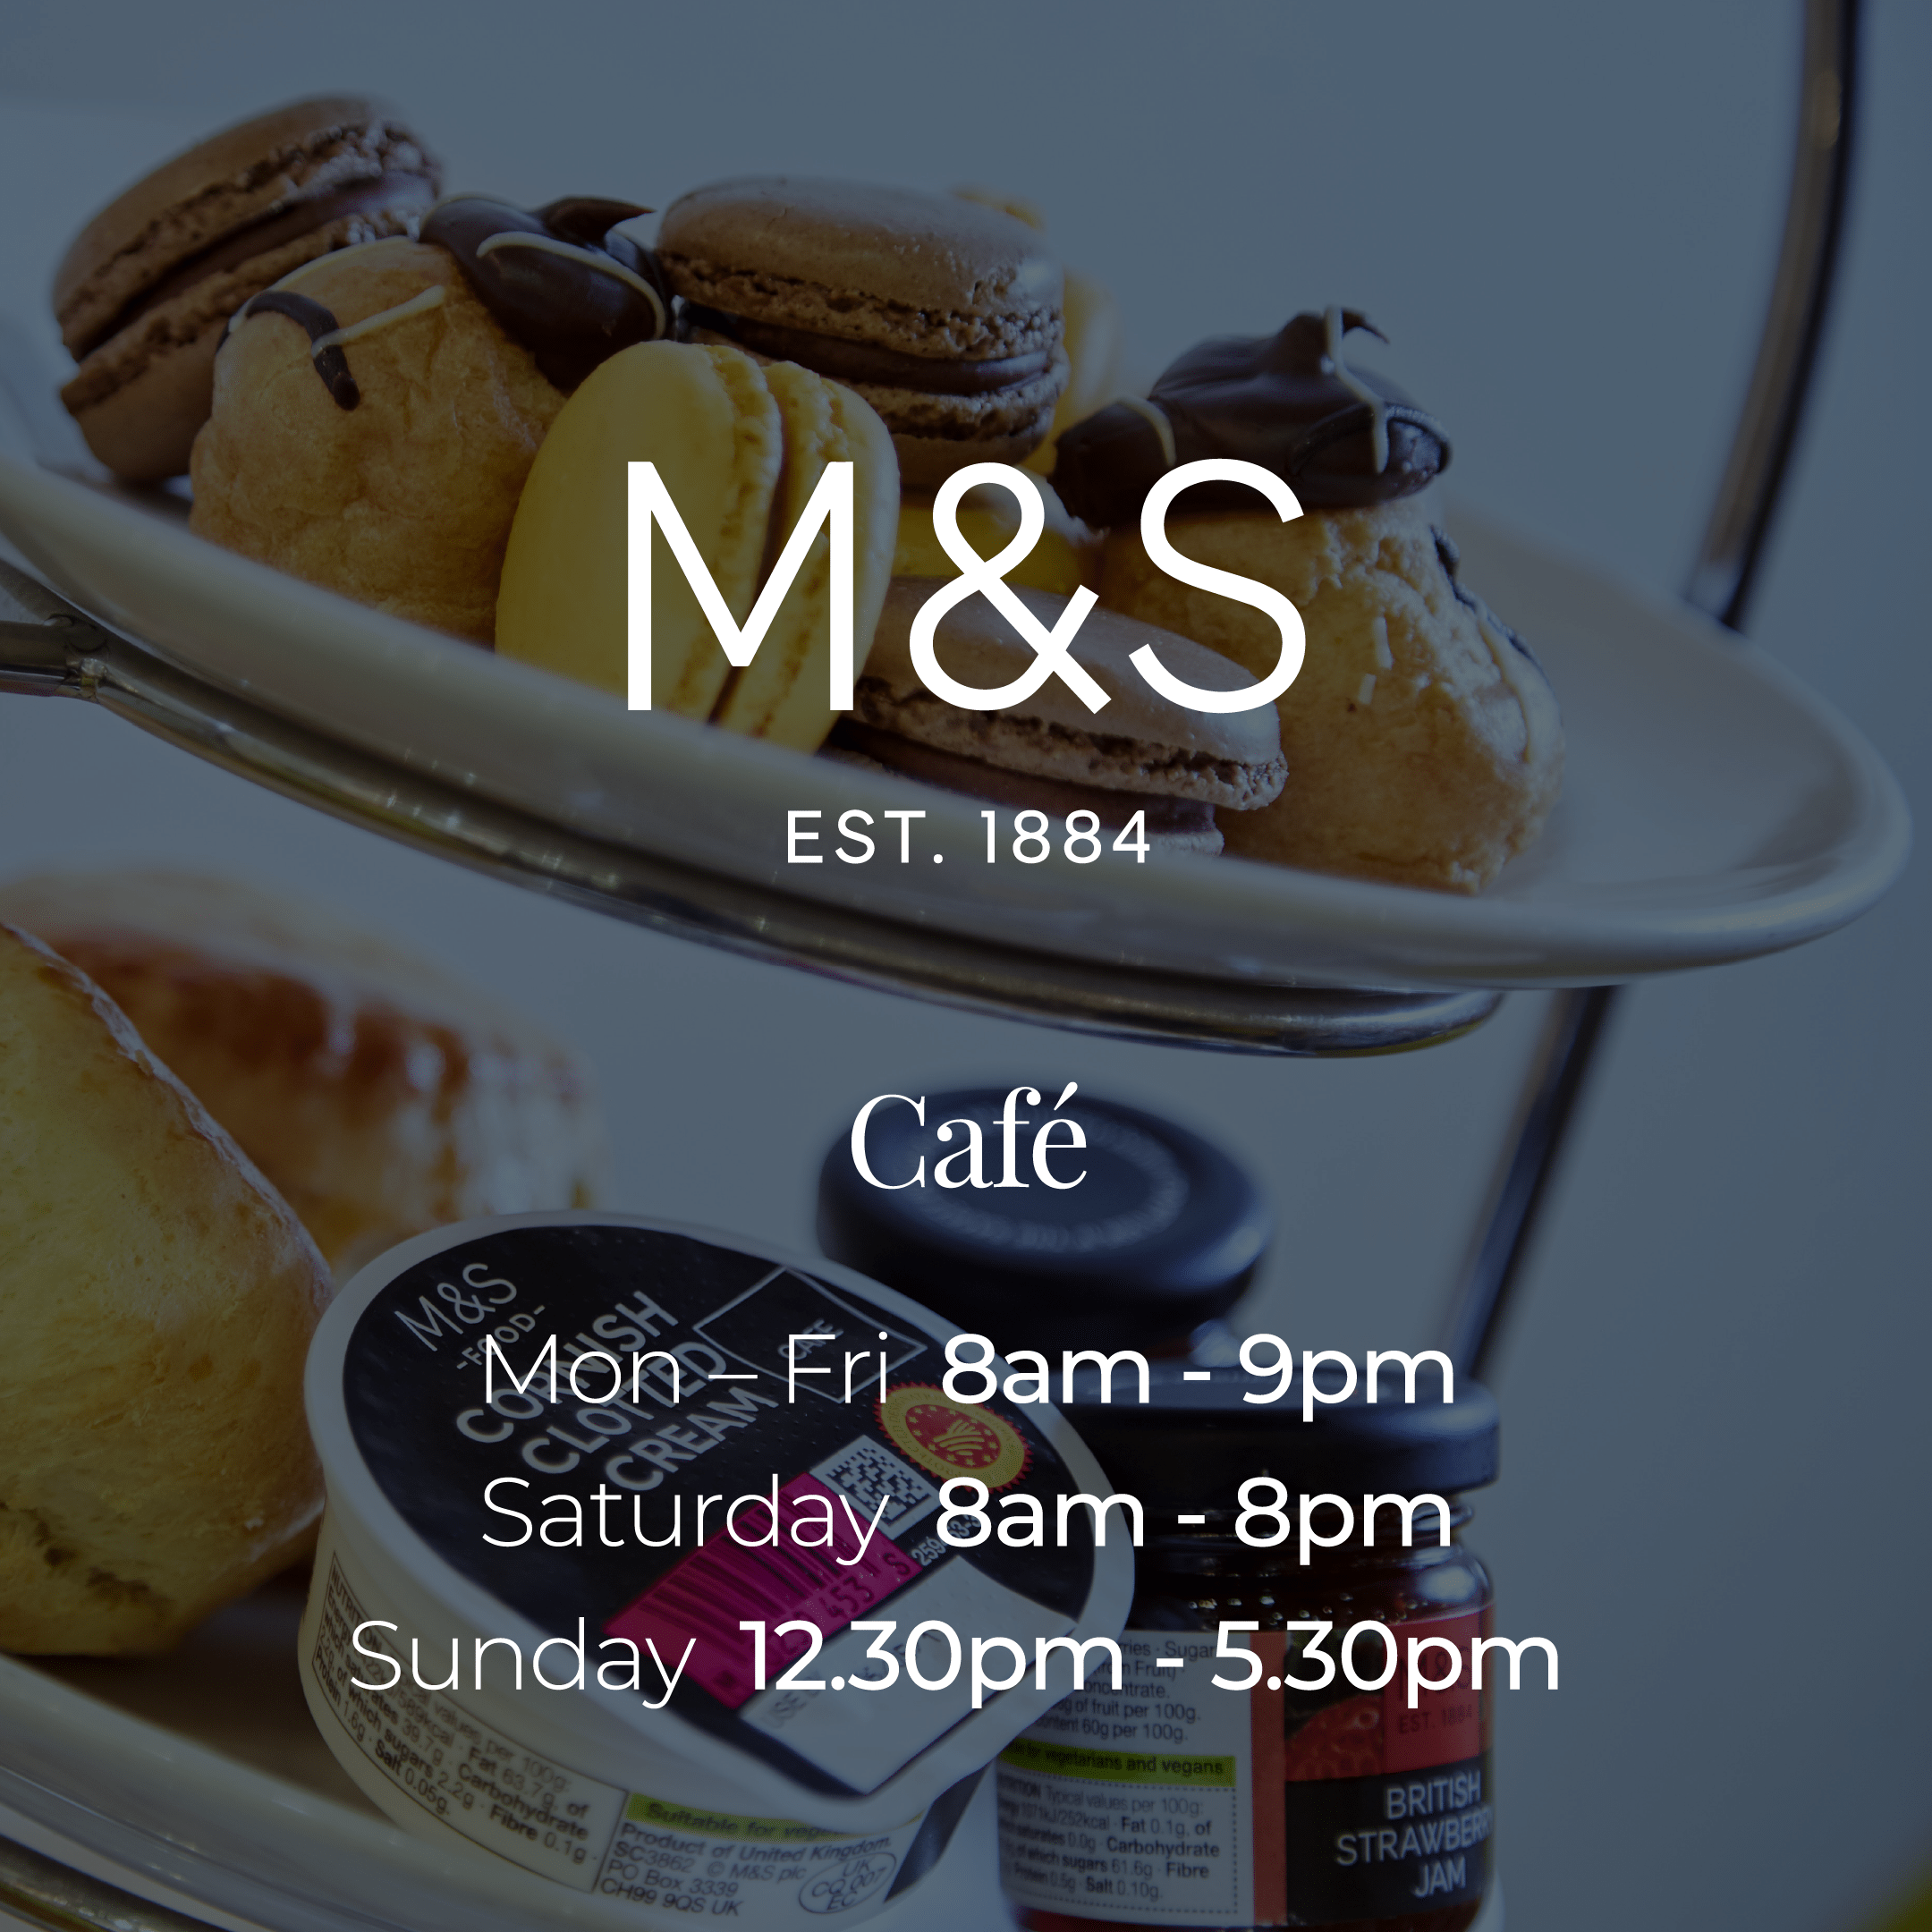 M&S Cafe Opening Hours